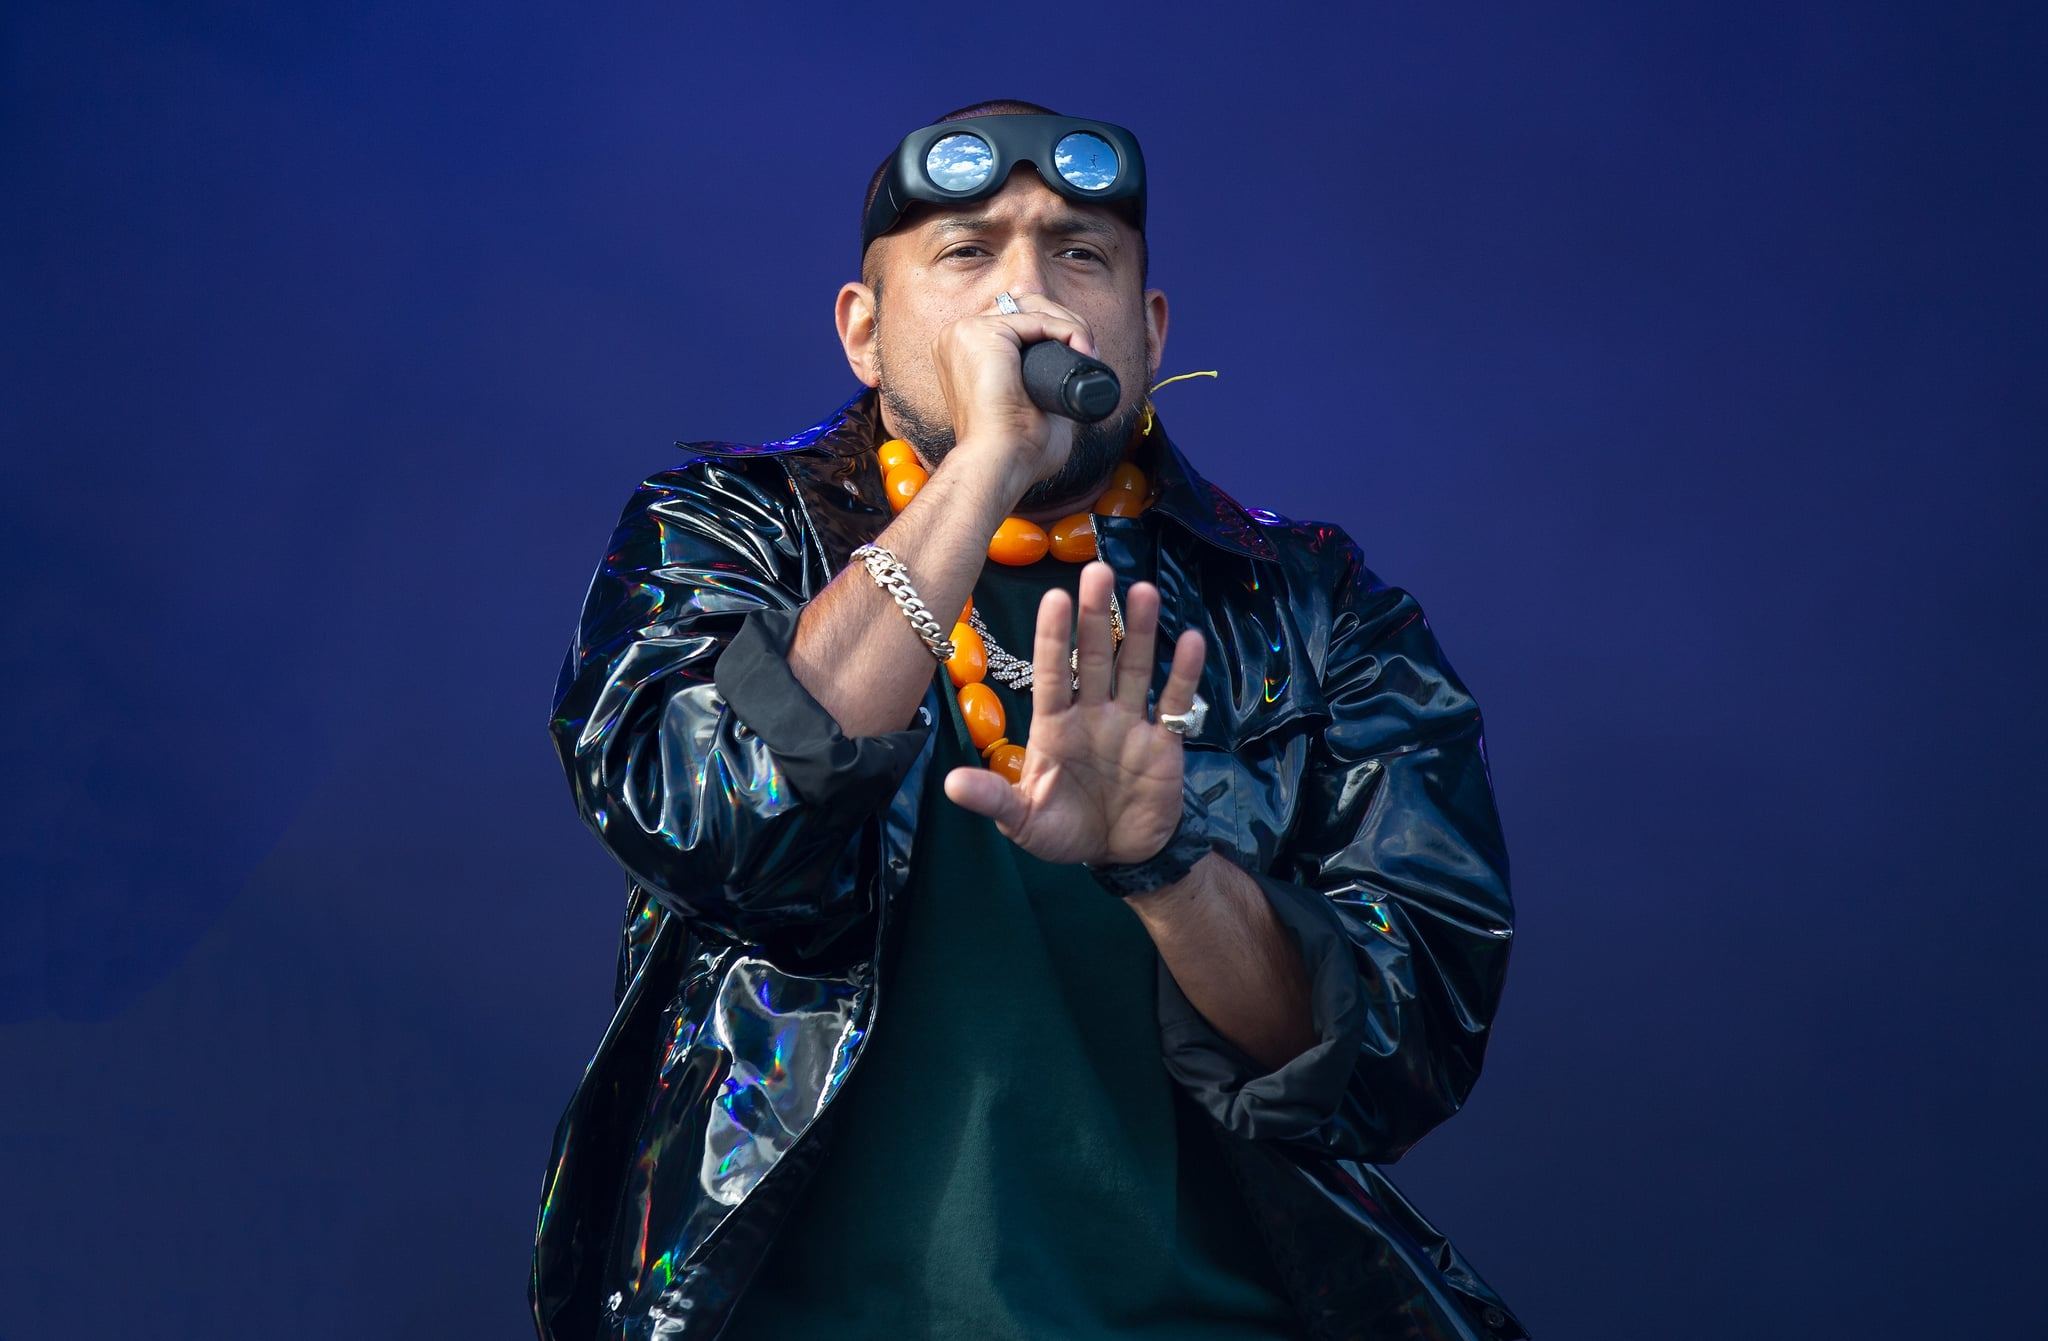 MIDDLESBROUGH, ENGLAND - MAY 26: Sean Paul performs at the Radio 1 Big Weekend at Stewart Park on May 26, 2019 in Middlesbrough, England. (Photo by Jo Hale/Redferns)